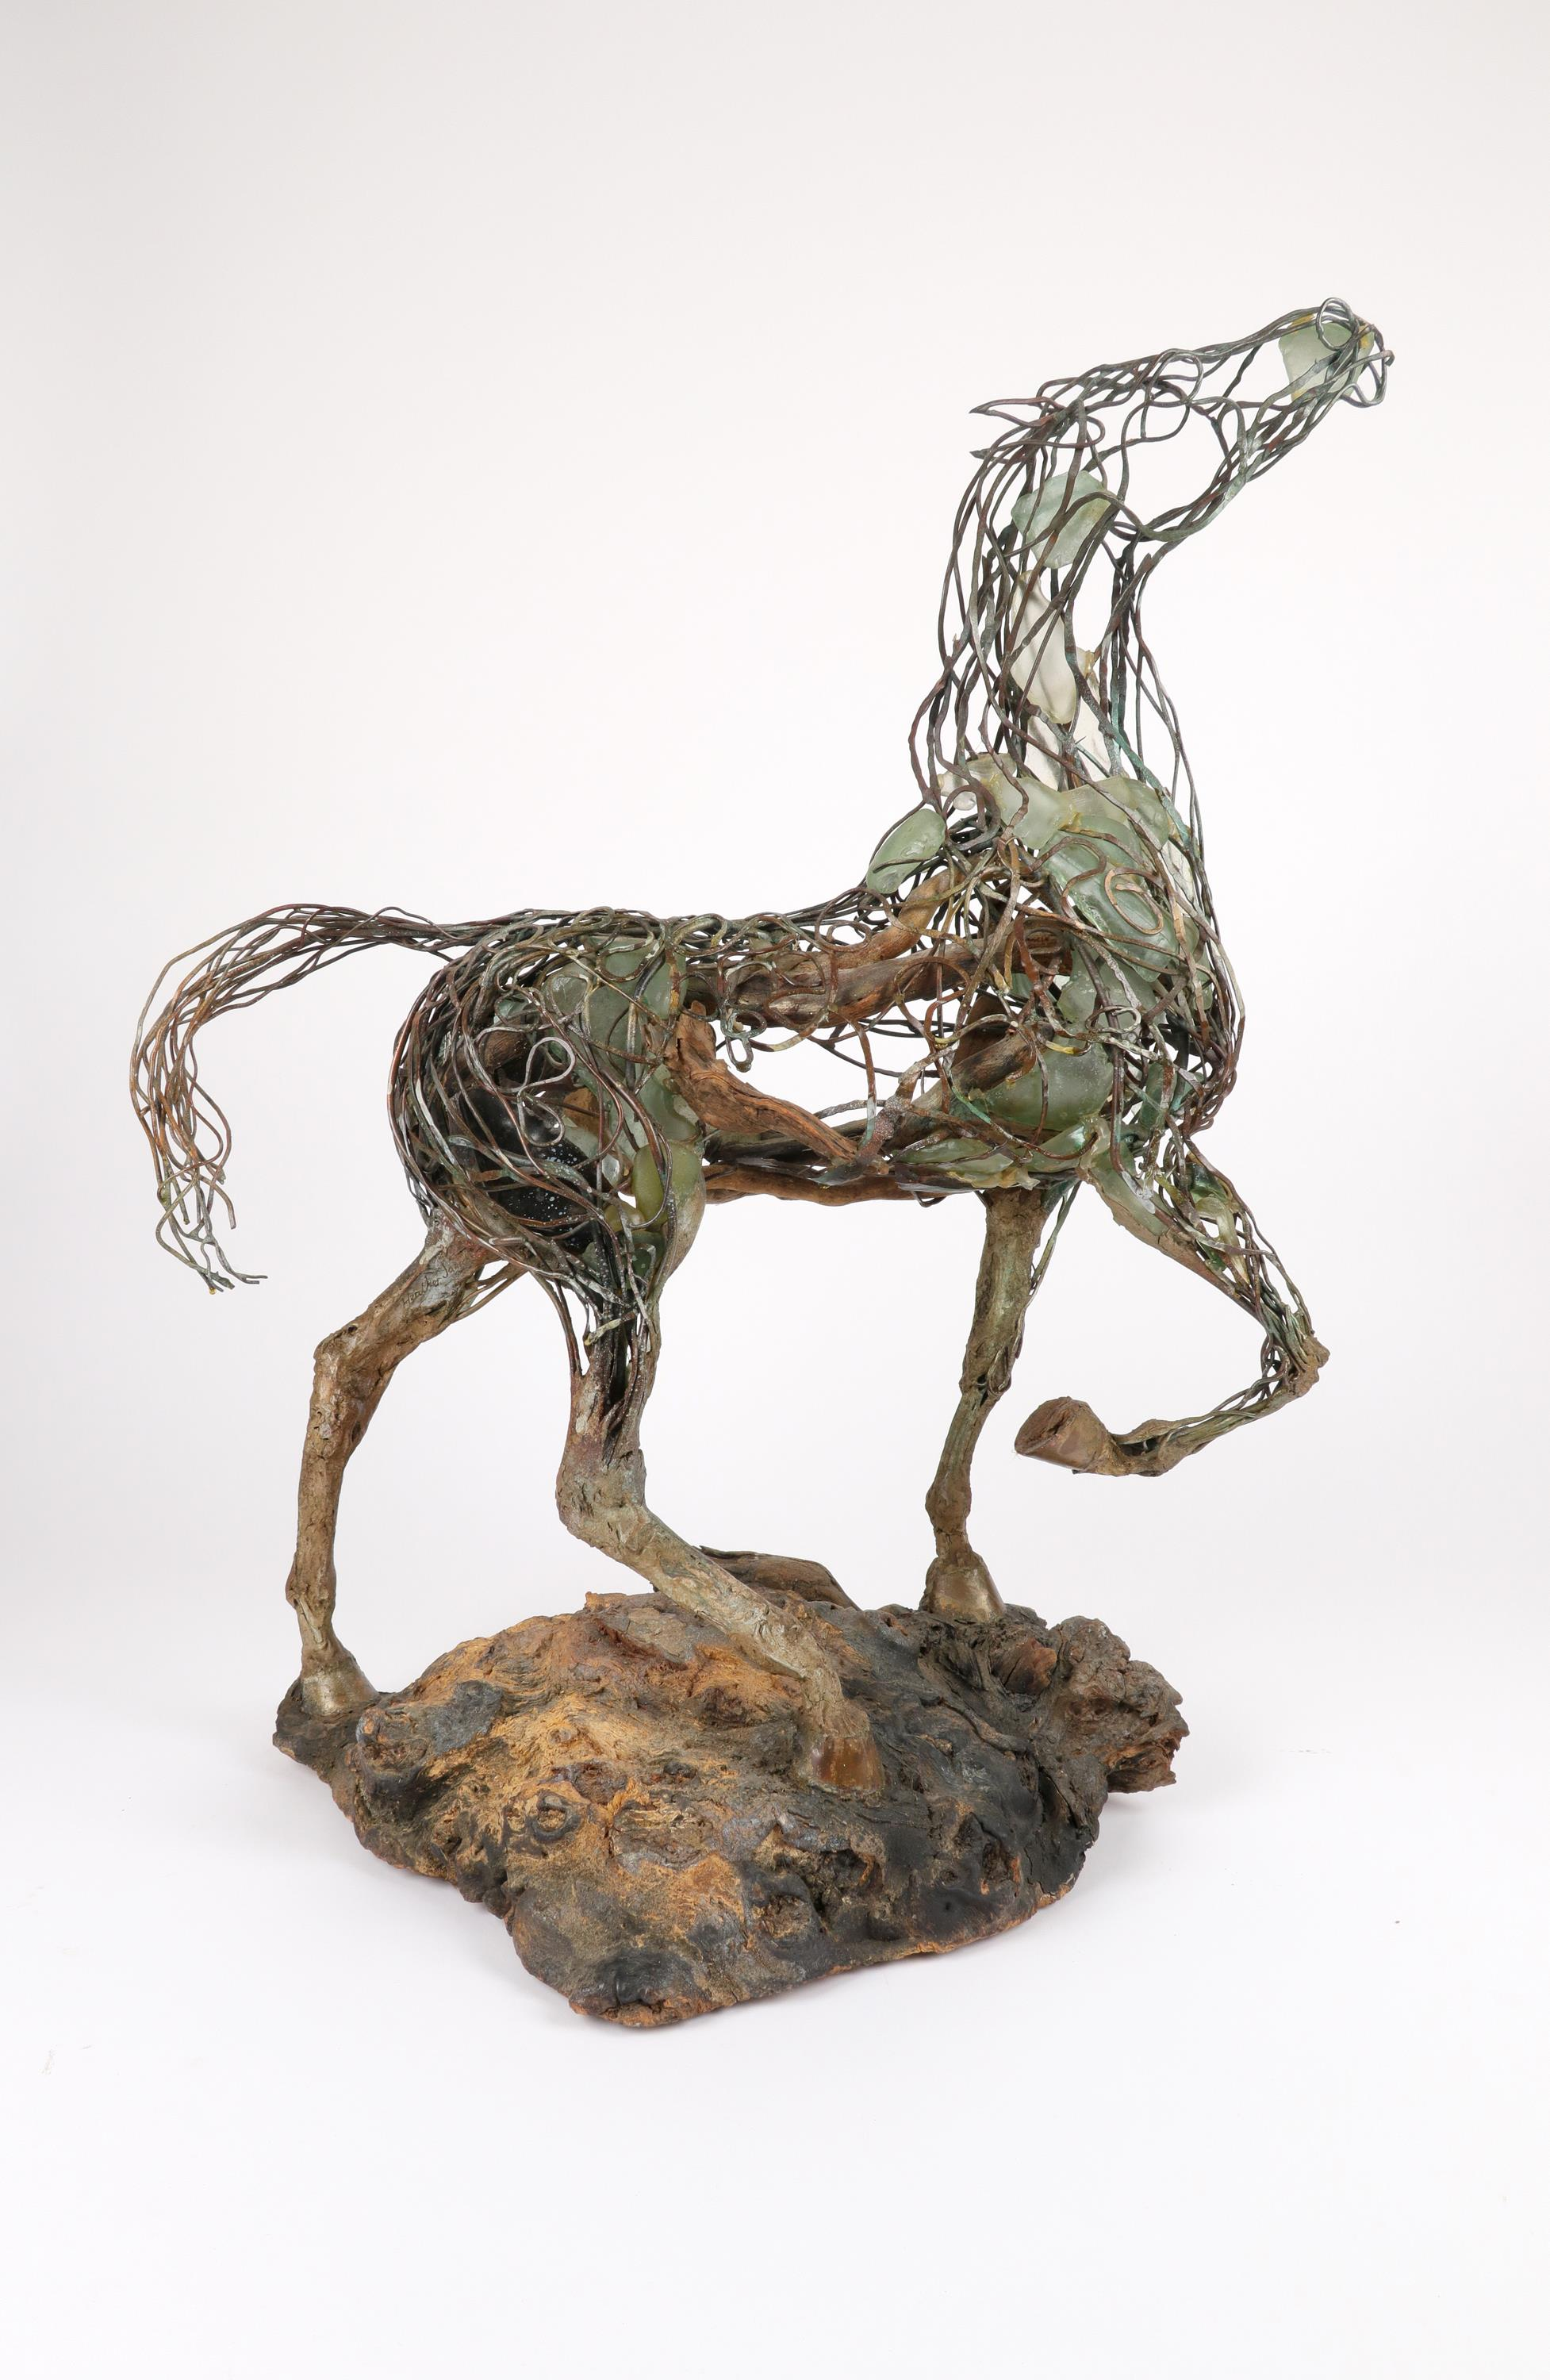 ‡Heather Jansch (b.1948) Neptune Signed Heather Jansch (to inside of back left leg) Copper wire, - Image 2 of 4